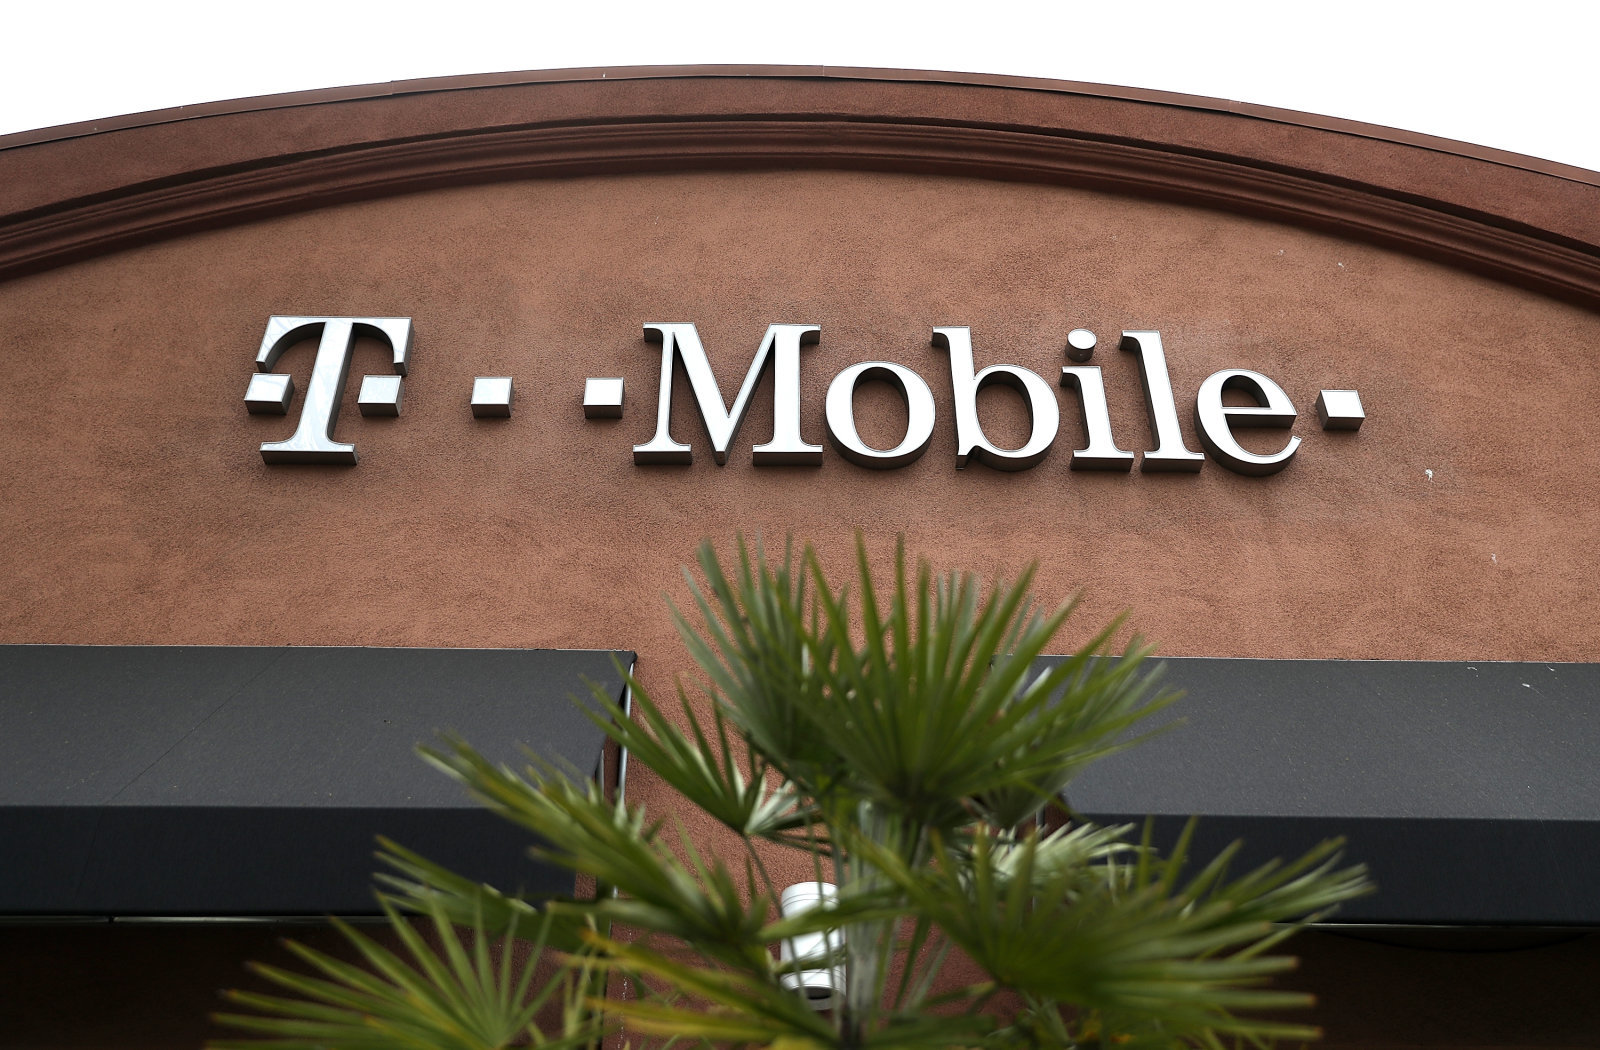 EL CERRITO, CA - APRIL 30:  A sign is posted on the exterior of a T-Mobile store on April 30, 2018 in El Cerrito, California. T-Mobile announced plans to acquire Sprint for $26 billion to merge the two telecom companies. (Photo by Justin Sullivan/Getty Images)